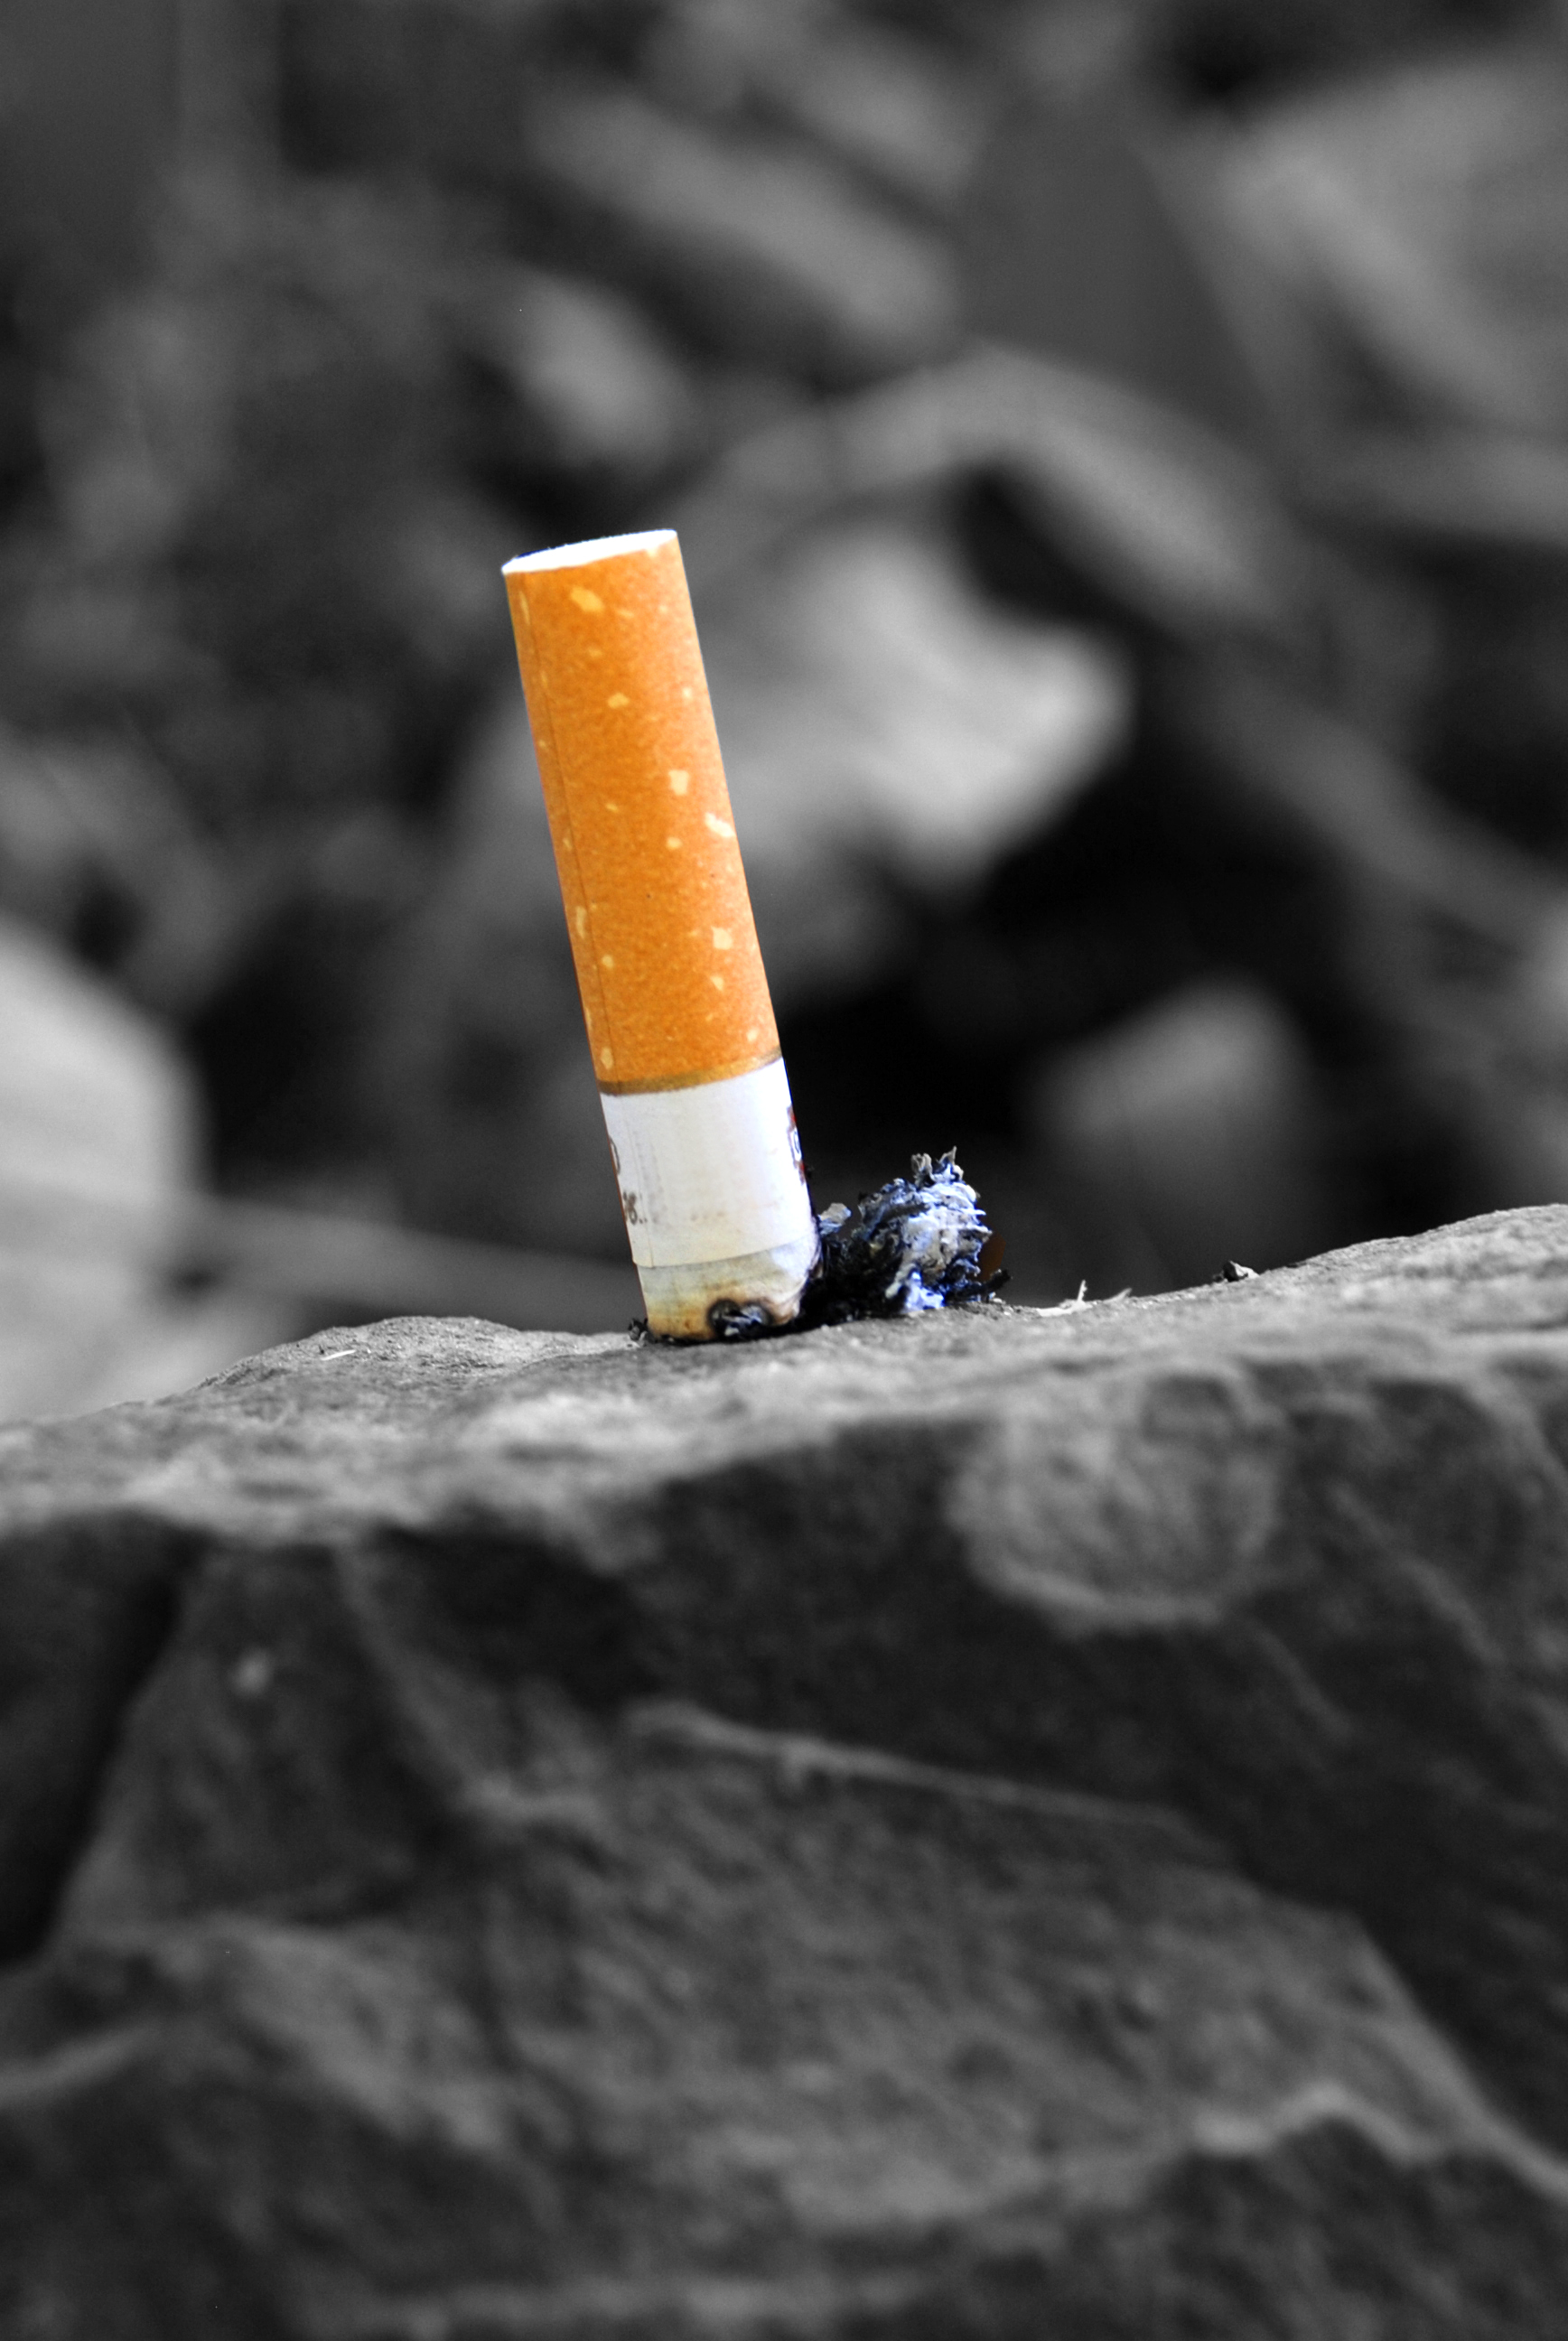 Cigarette butts are damaging our plants